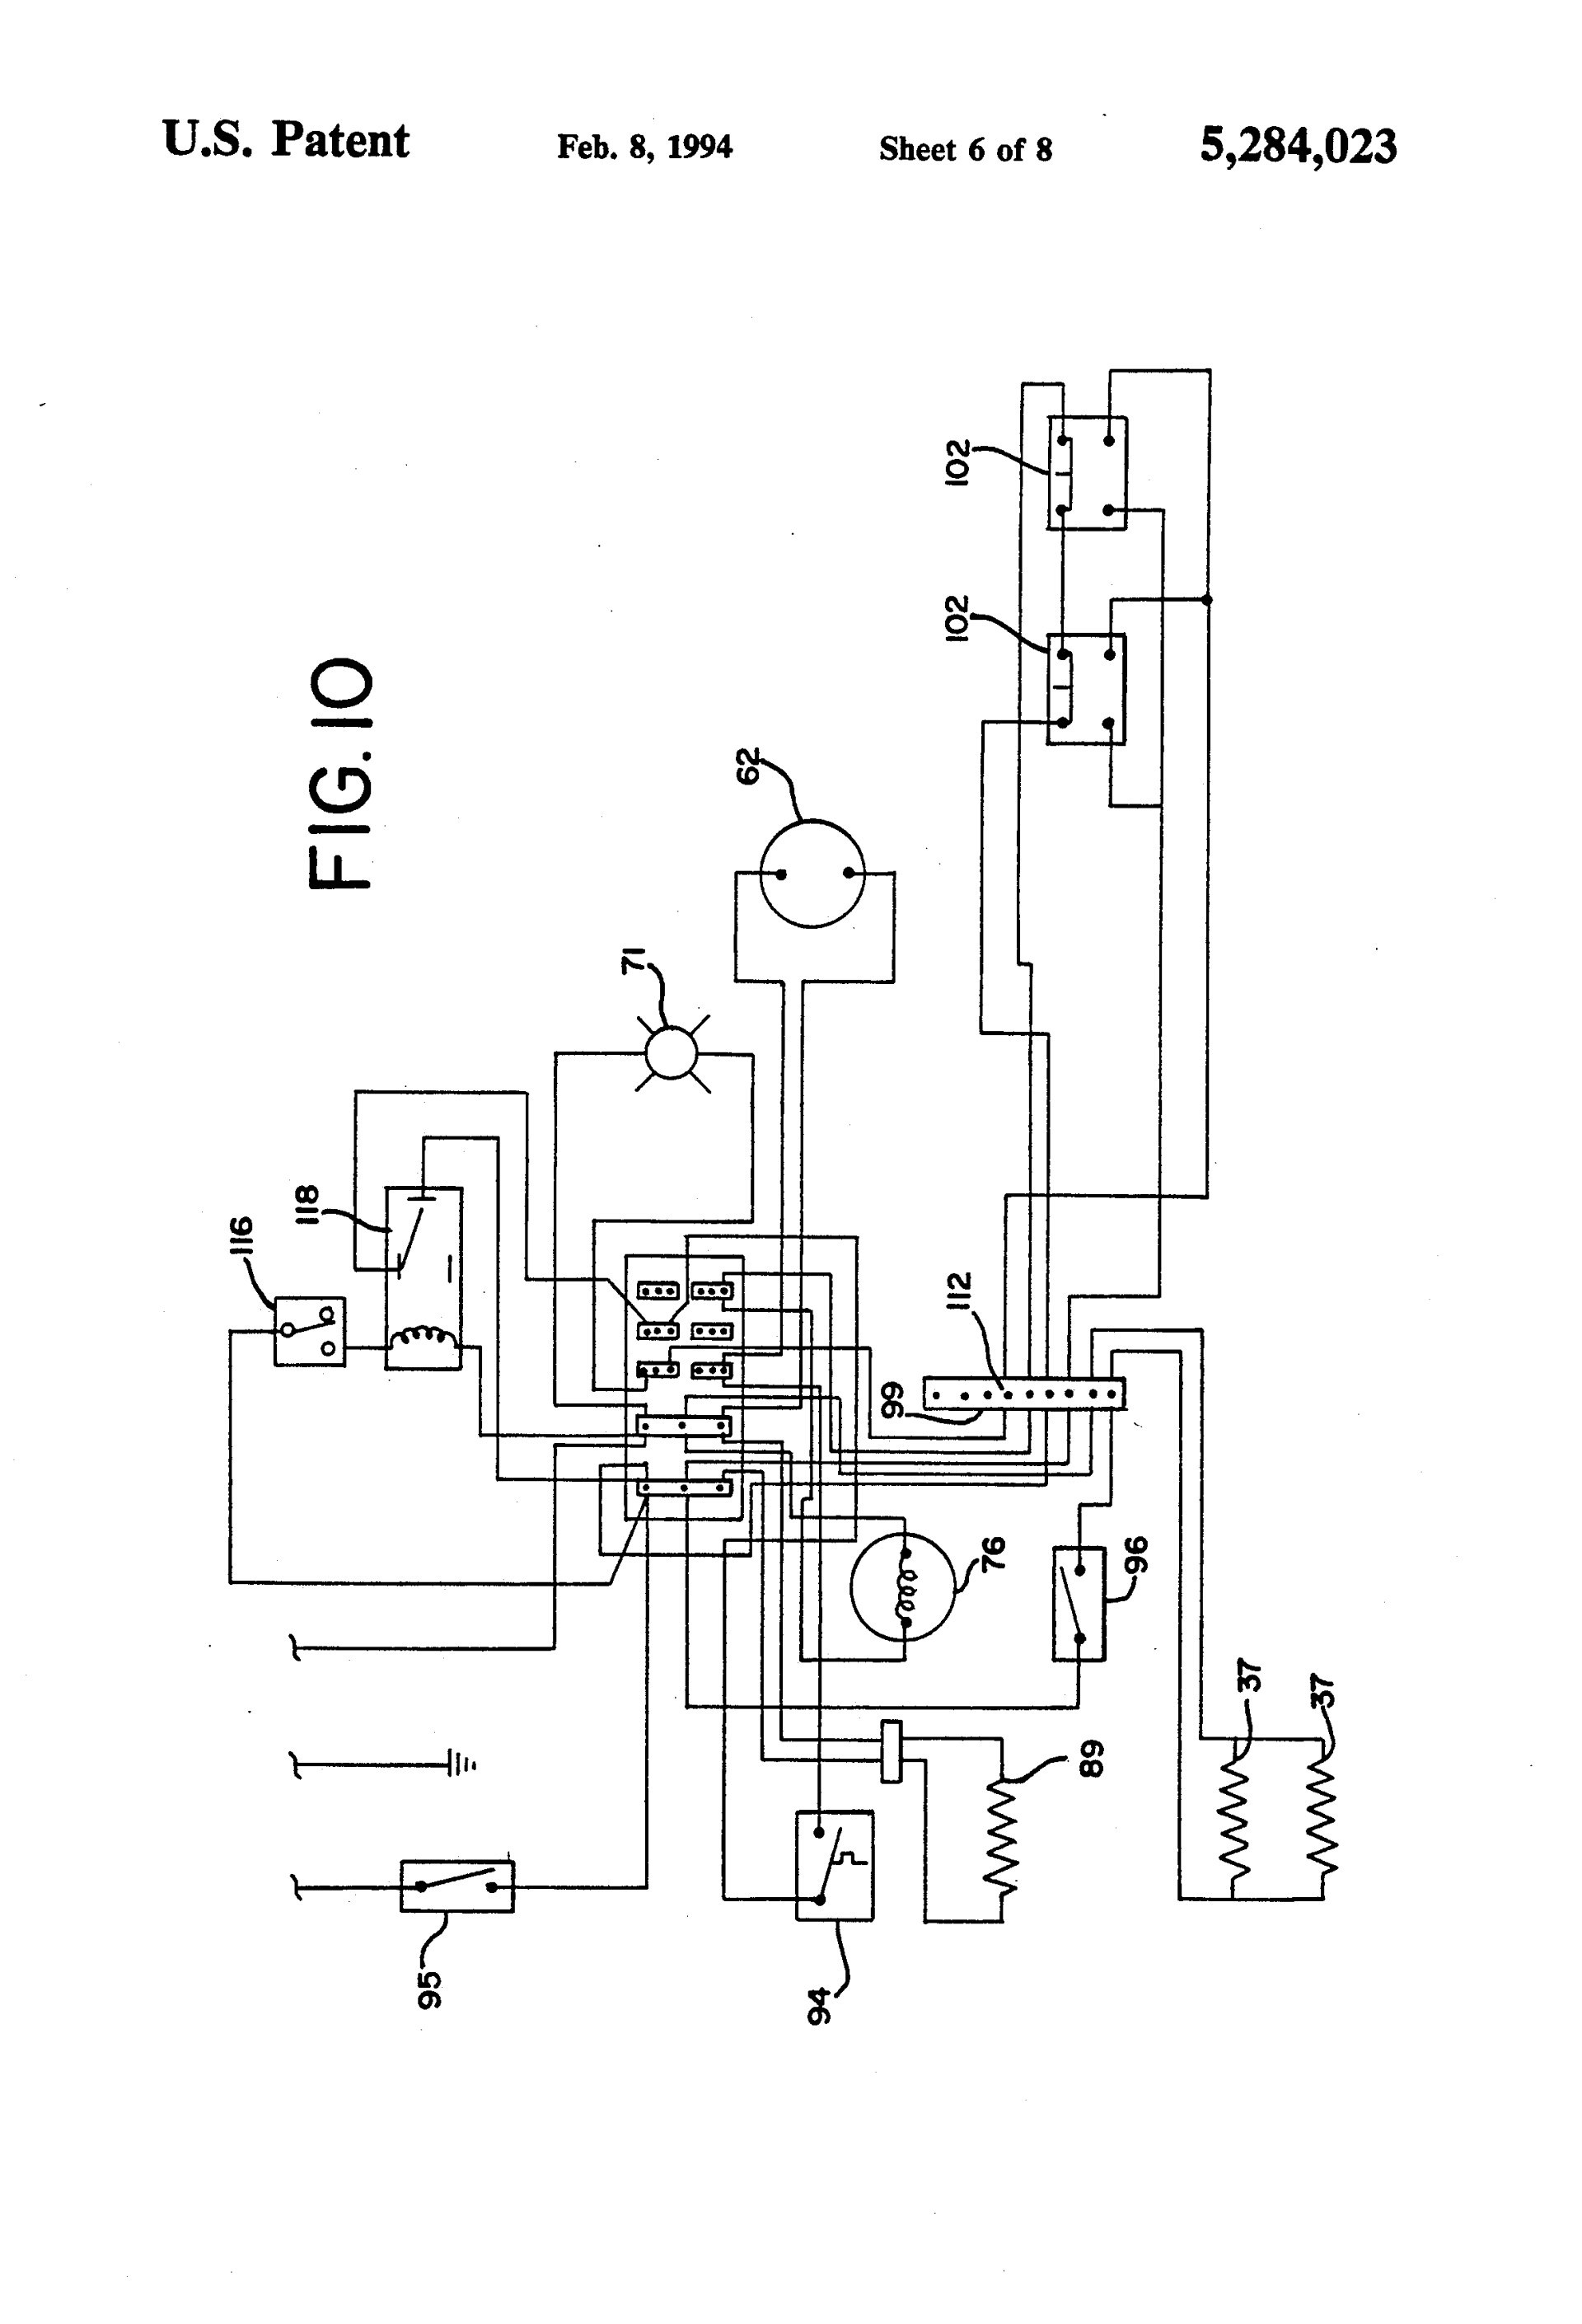 True T 23f Wiring Diagram - Arcade Game Wiring Diagram -  gsxr750.periihh.jeanjaures37.fr | True T 23f Schematics |  | Wiring Diagram Resource